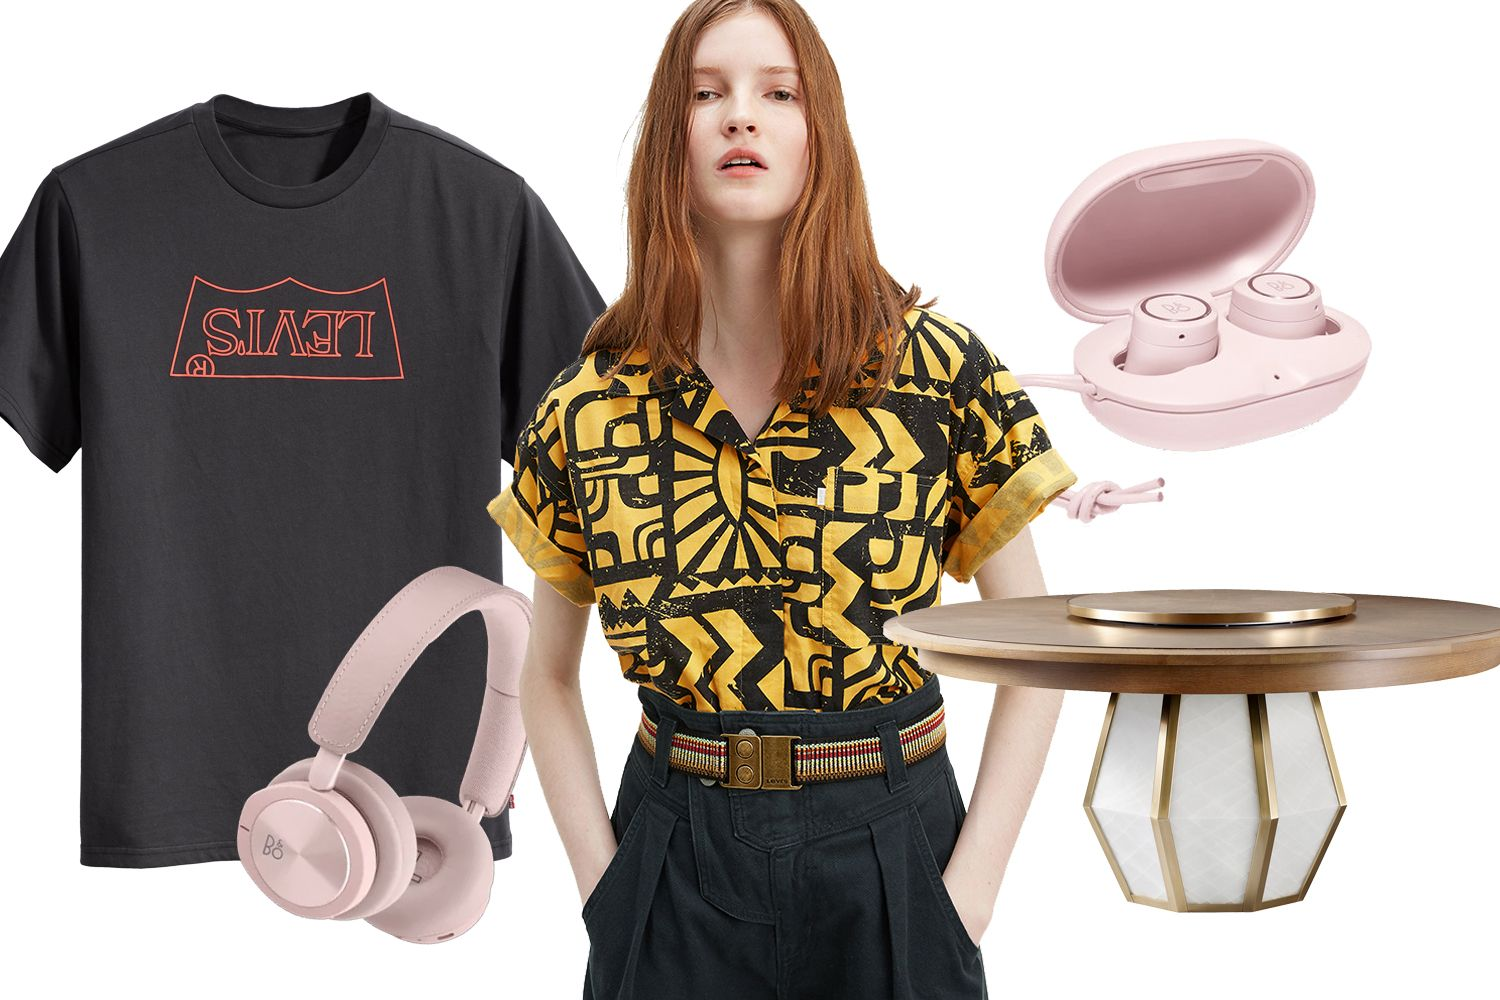 Editor's Picks: Stranger Things Apparel, Pretty In Pink Audio Toys And More